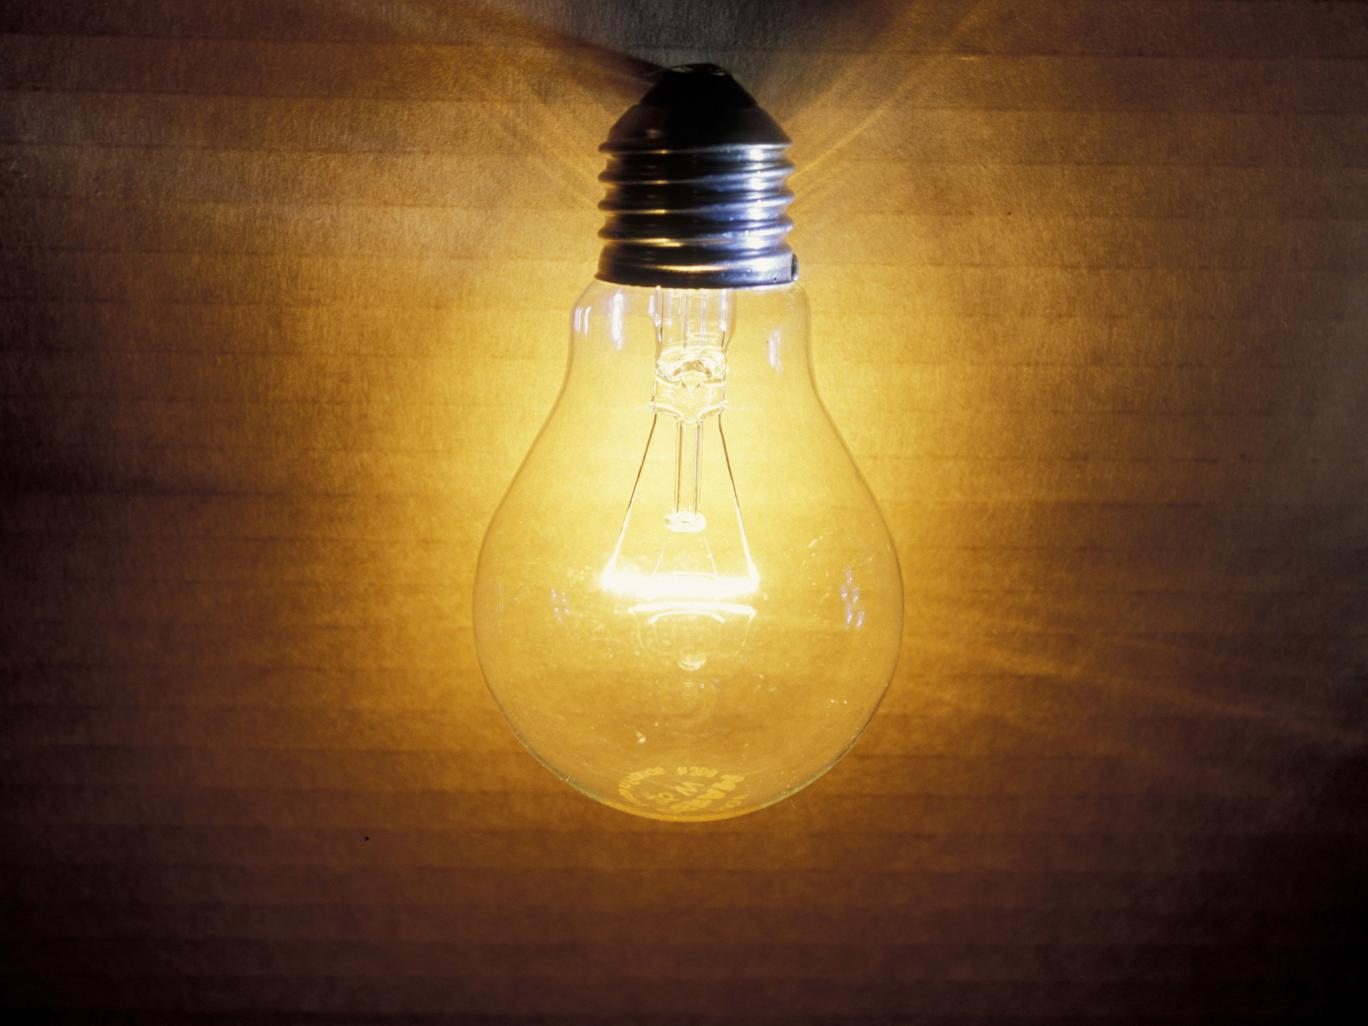 Old fashioned filament bulbs.